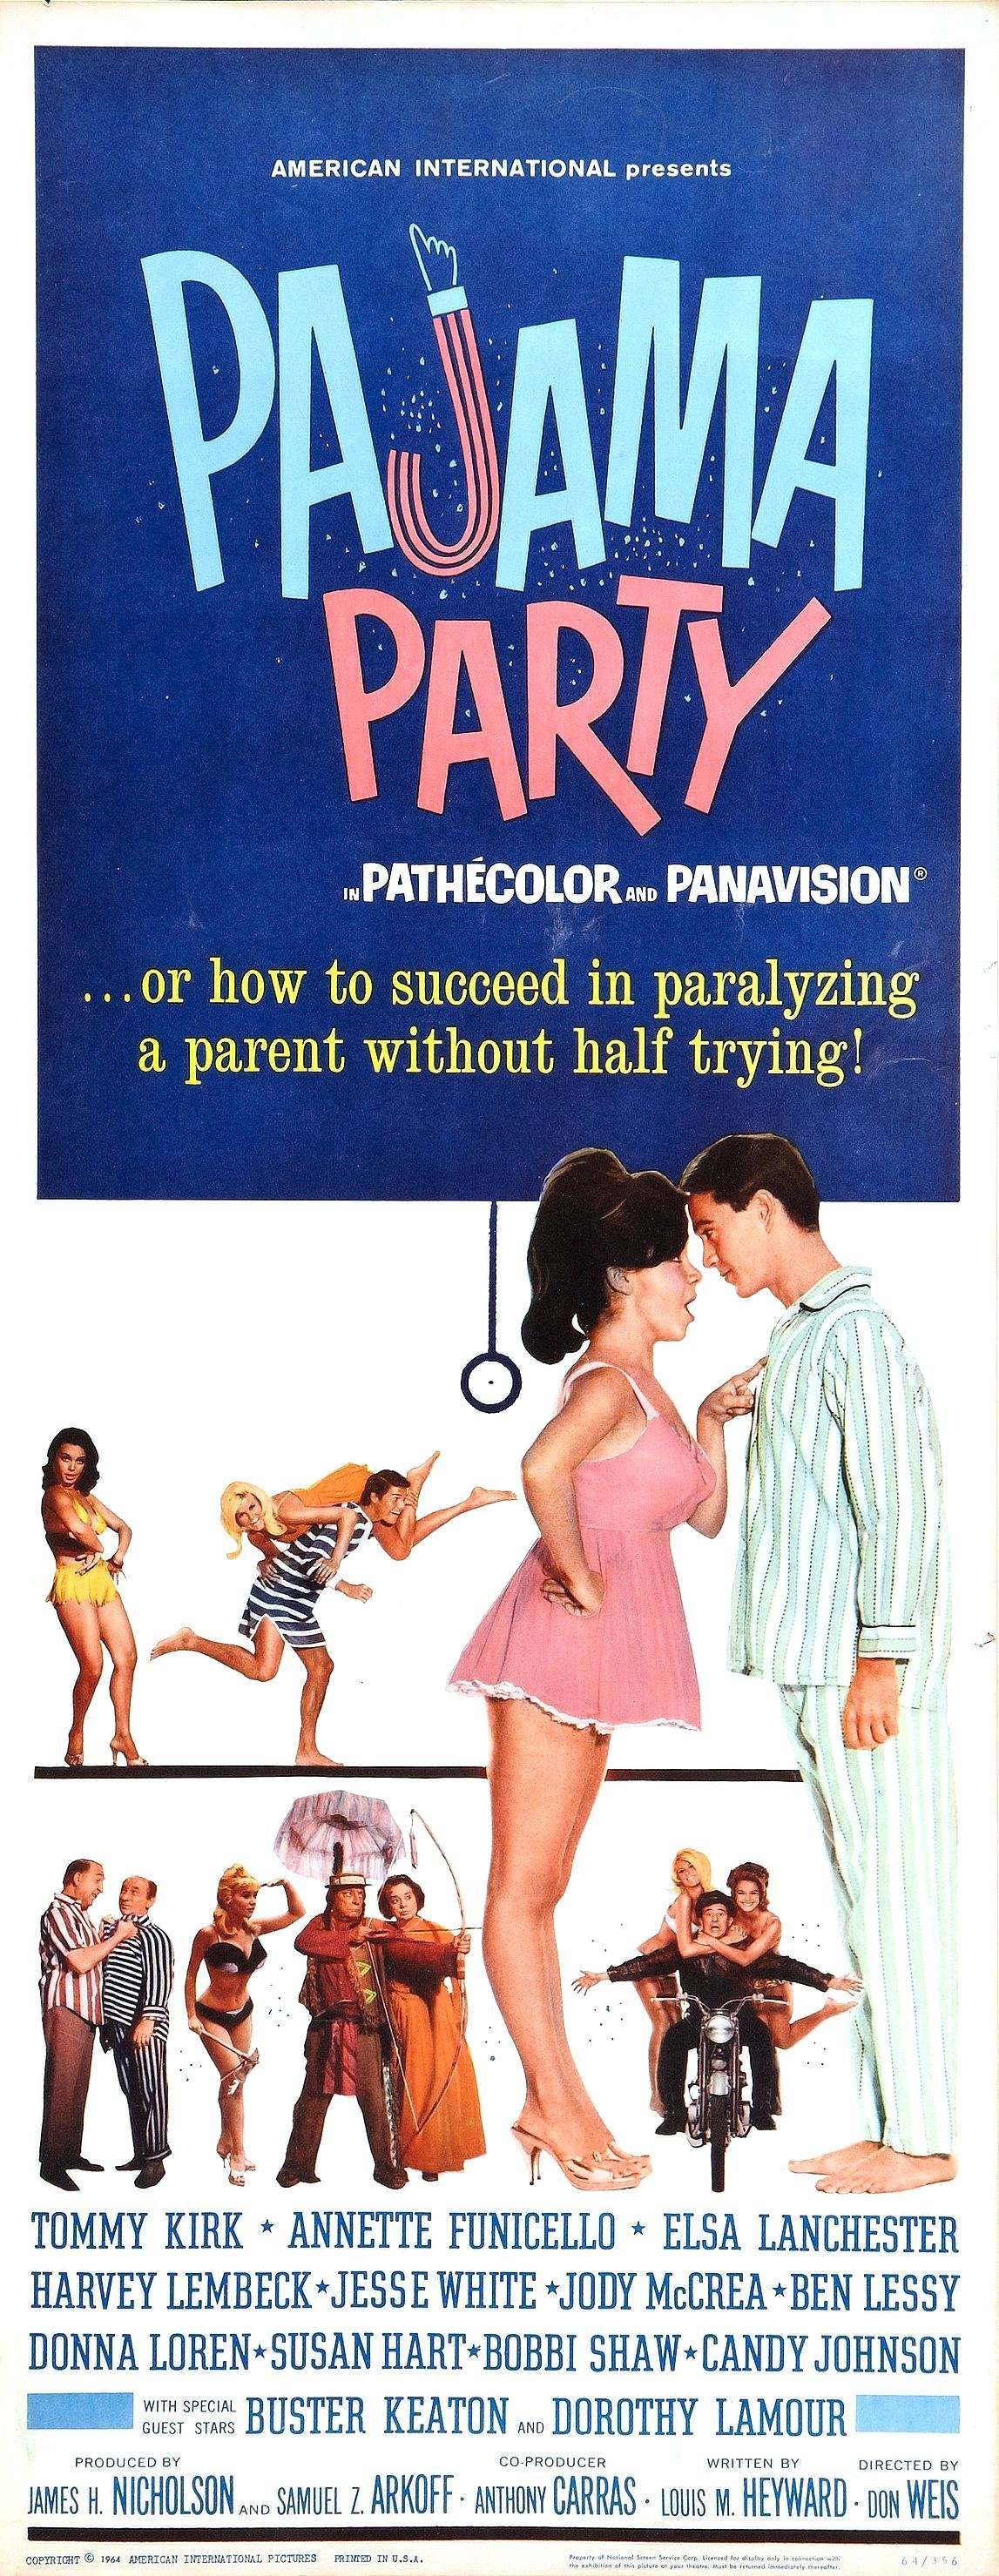 movie poster for the aip film quotpajama partyquot 1964